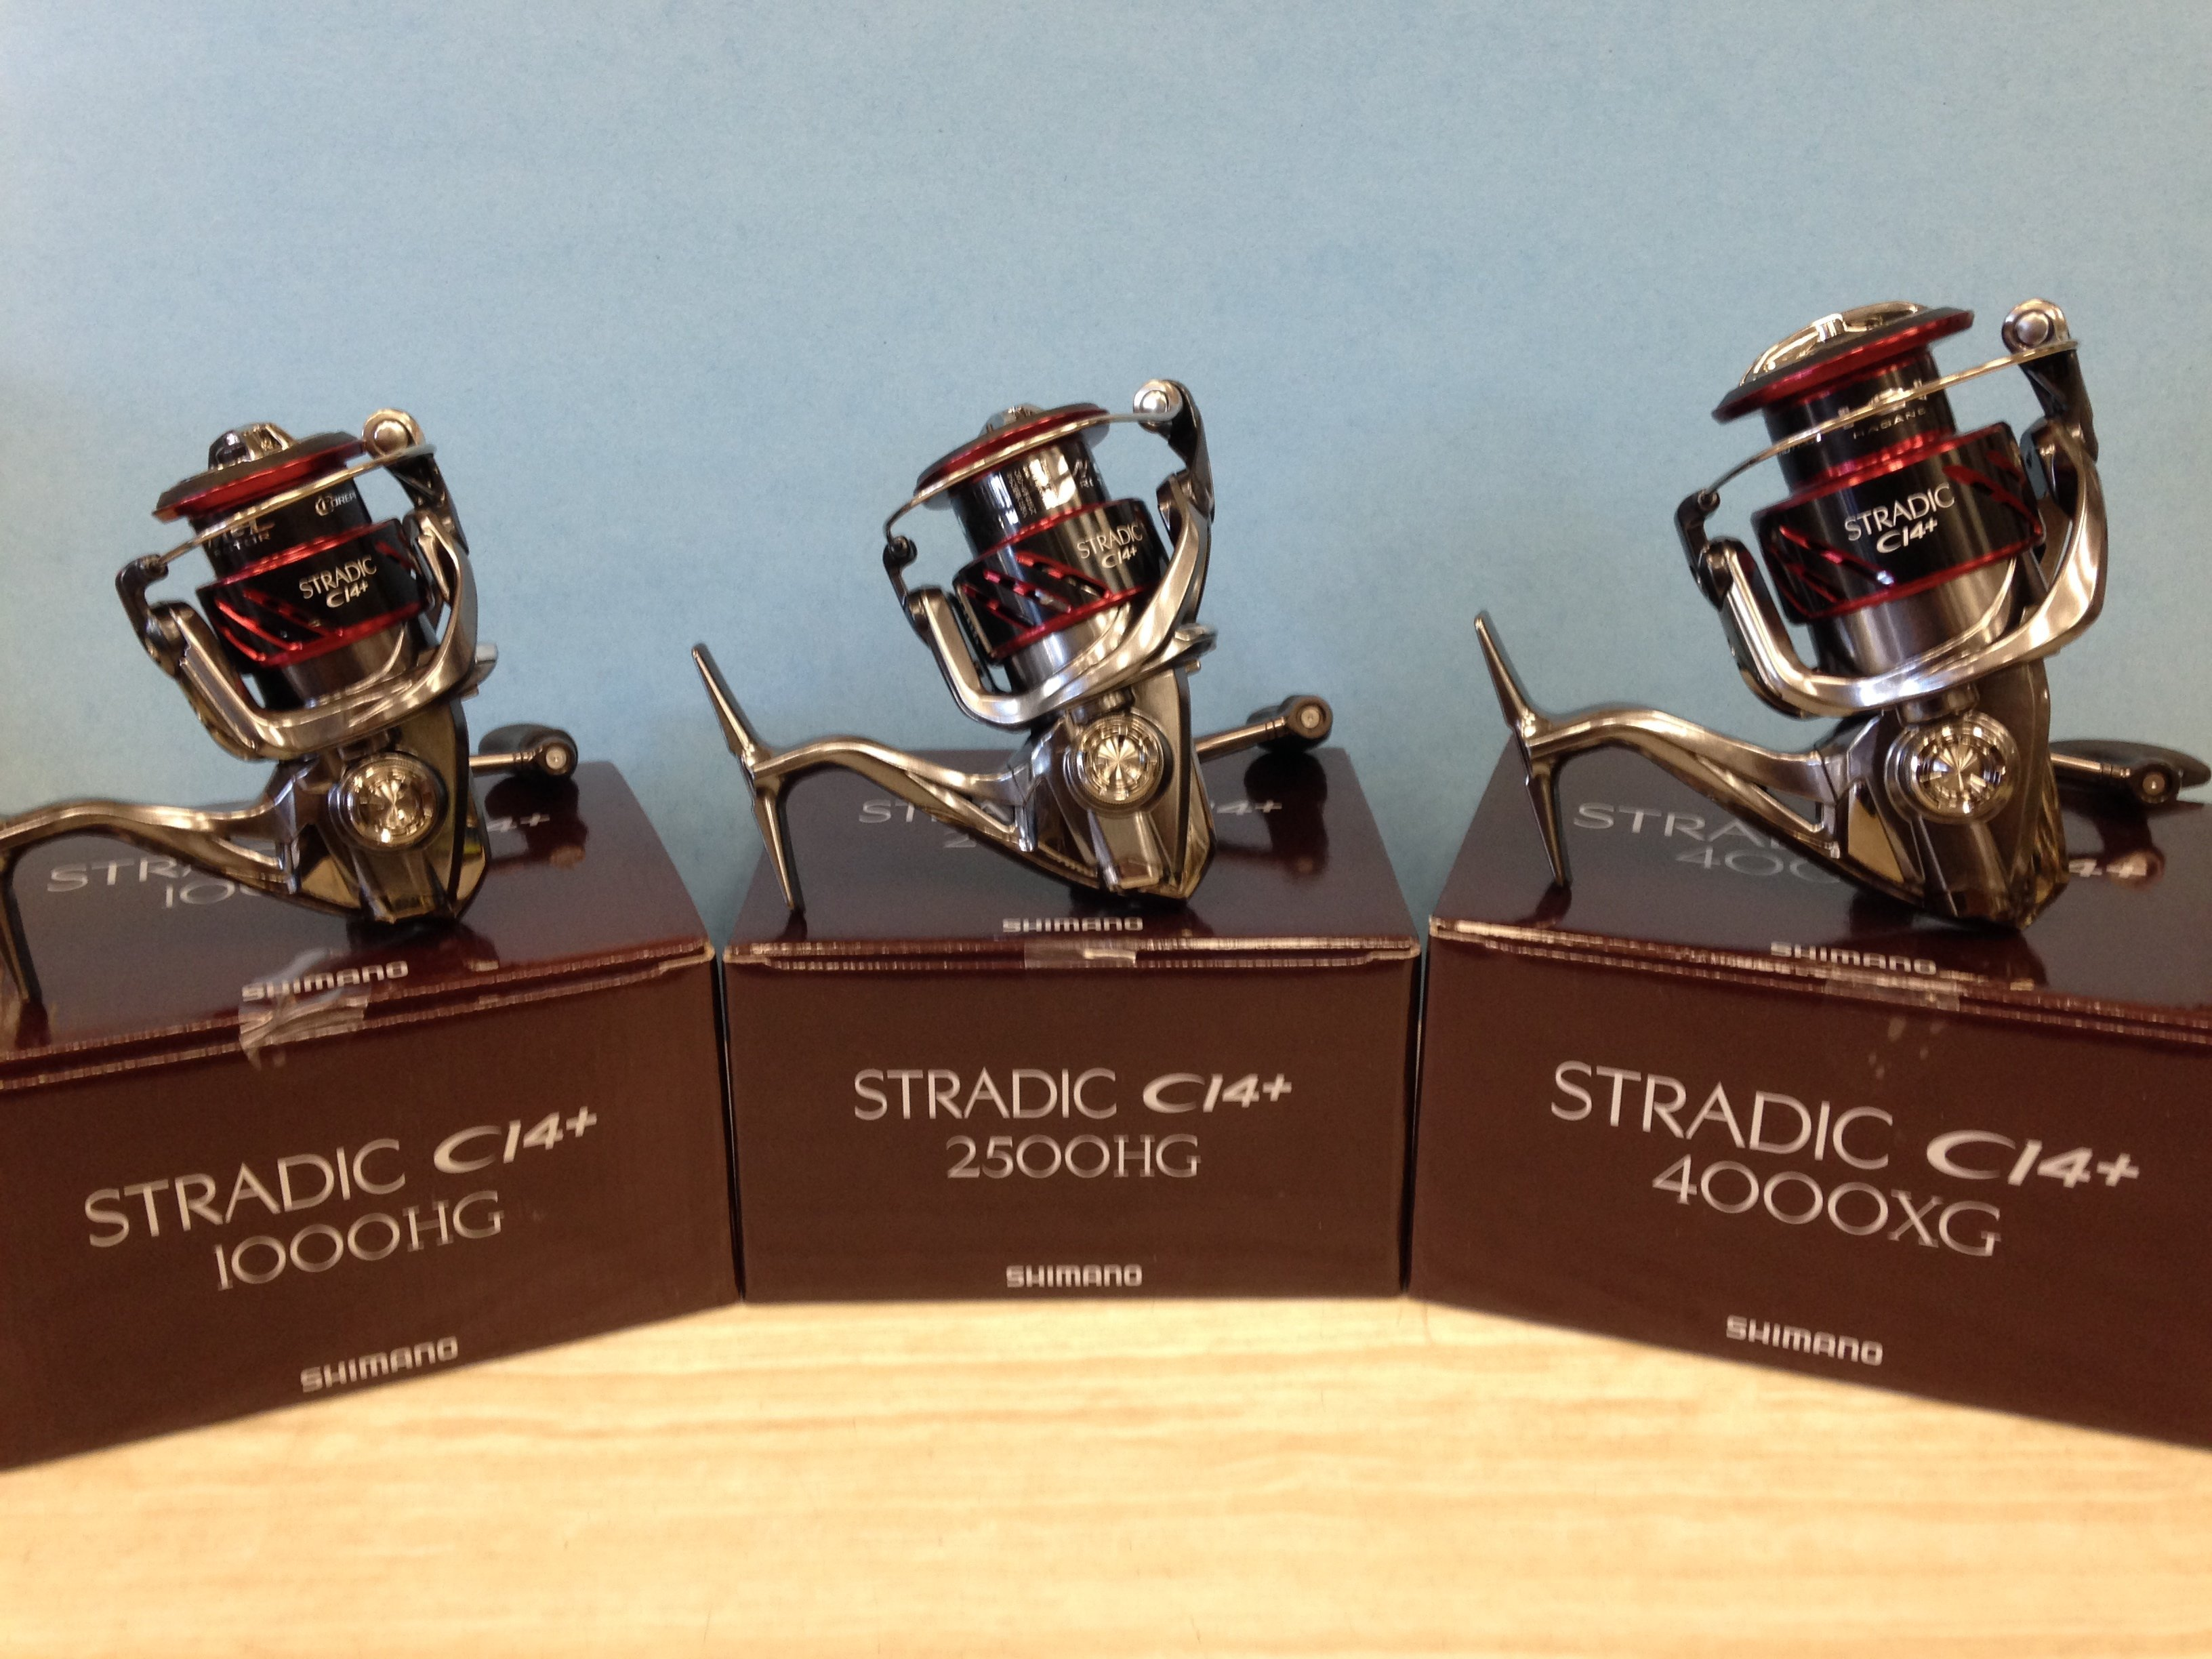 The 3rd Generation of Shimano Stradic CI4+ FB Available Now in sizes 1000HG, 2500HG, and 4000XG Coming Soon 3000HG